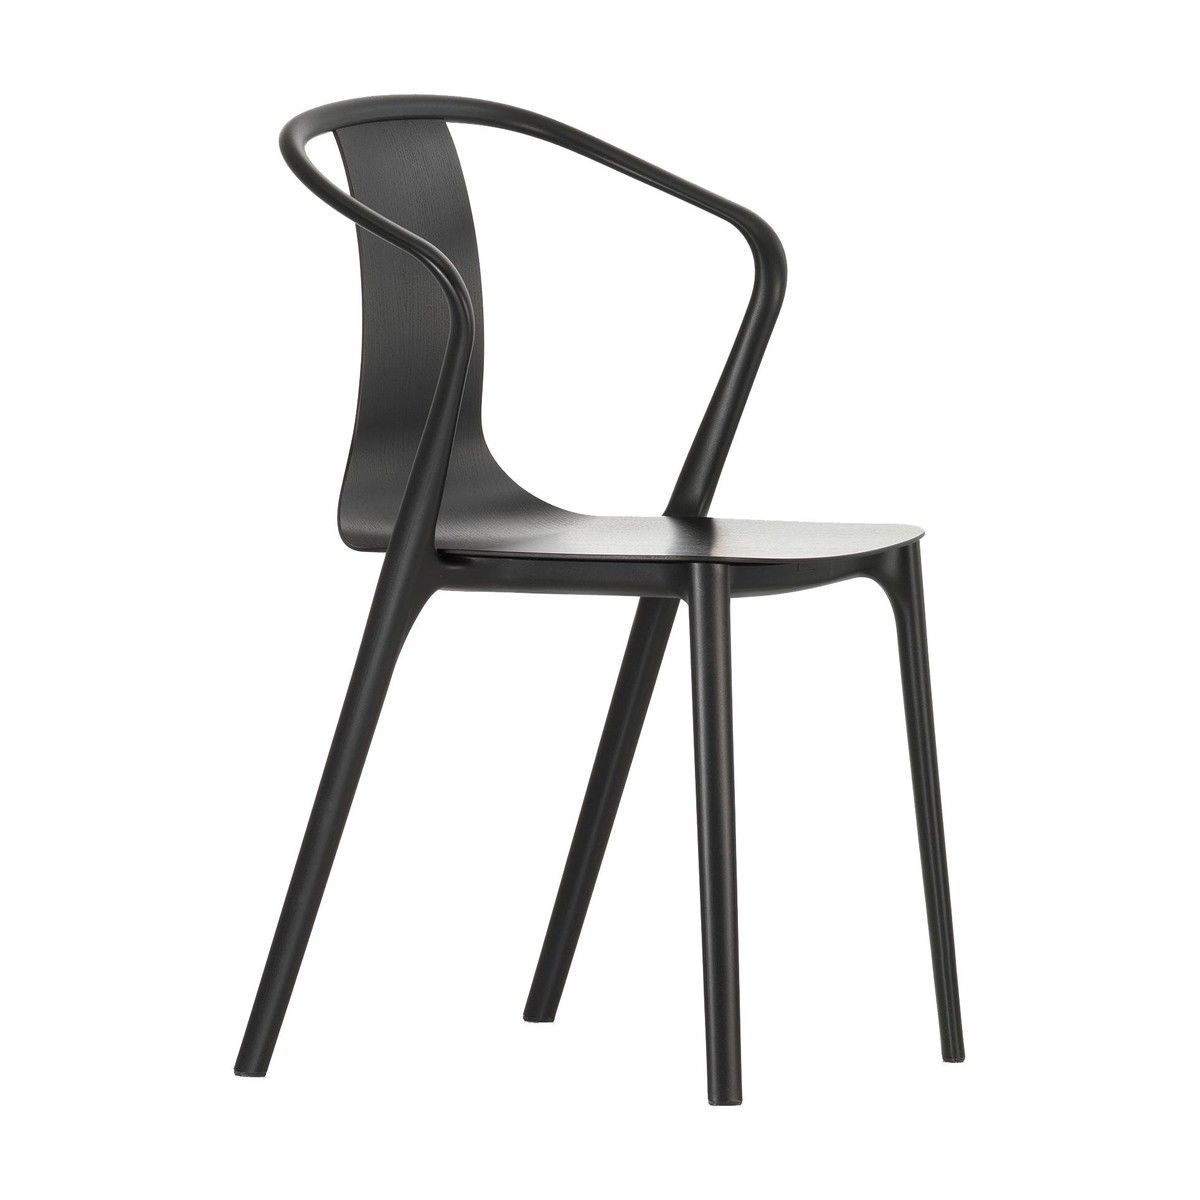 belleville armchair plastic outdoor stuhl vitra. Black Bedroom Furniture Sets. Home Design Ideas